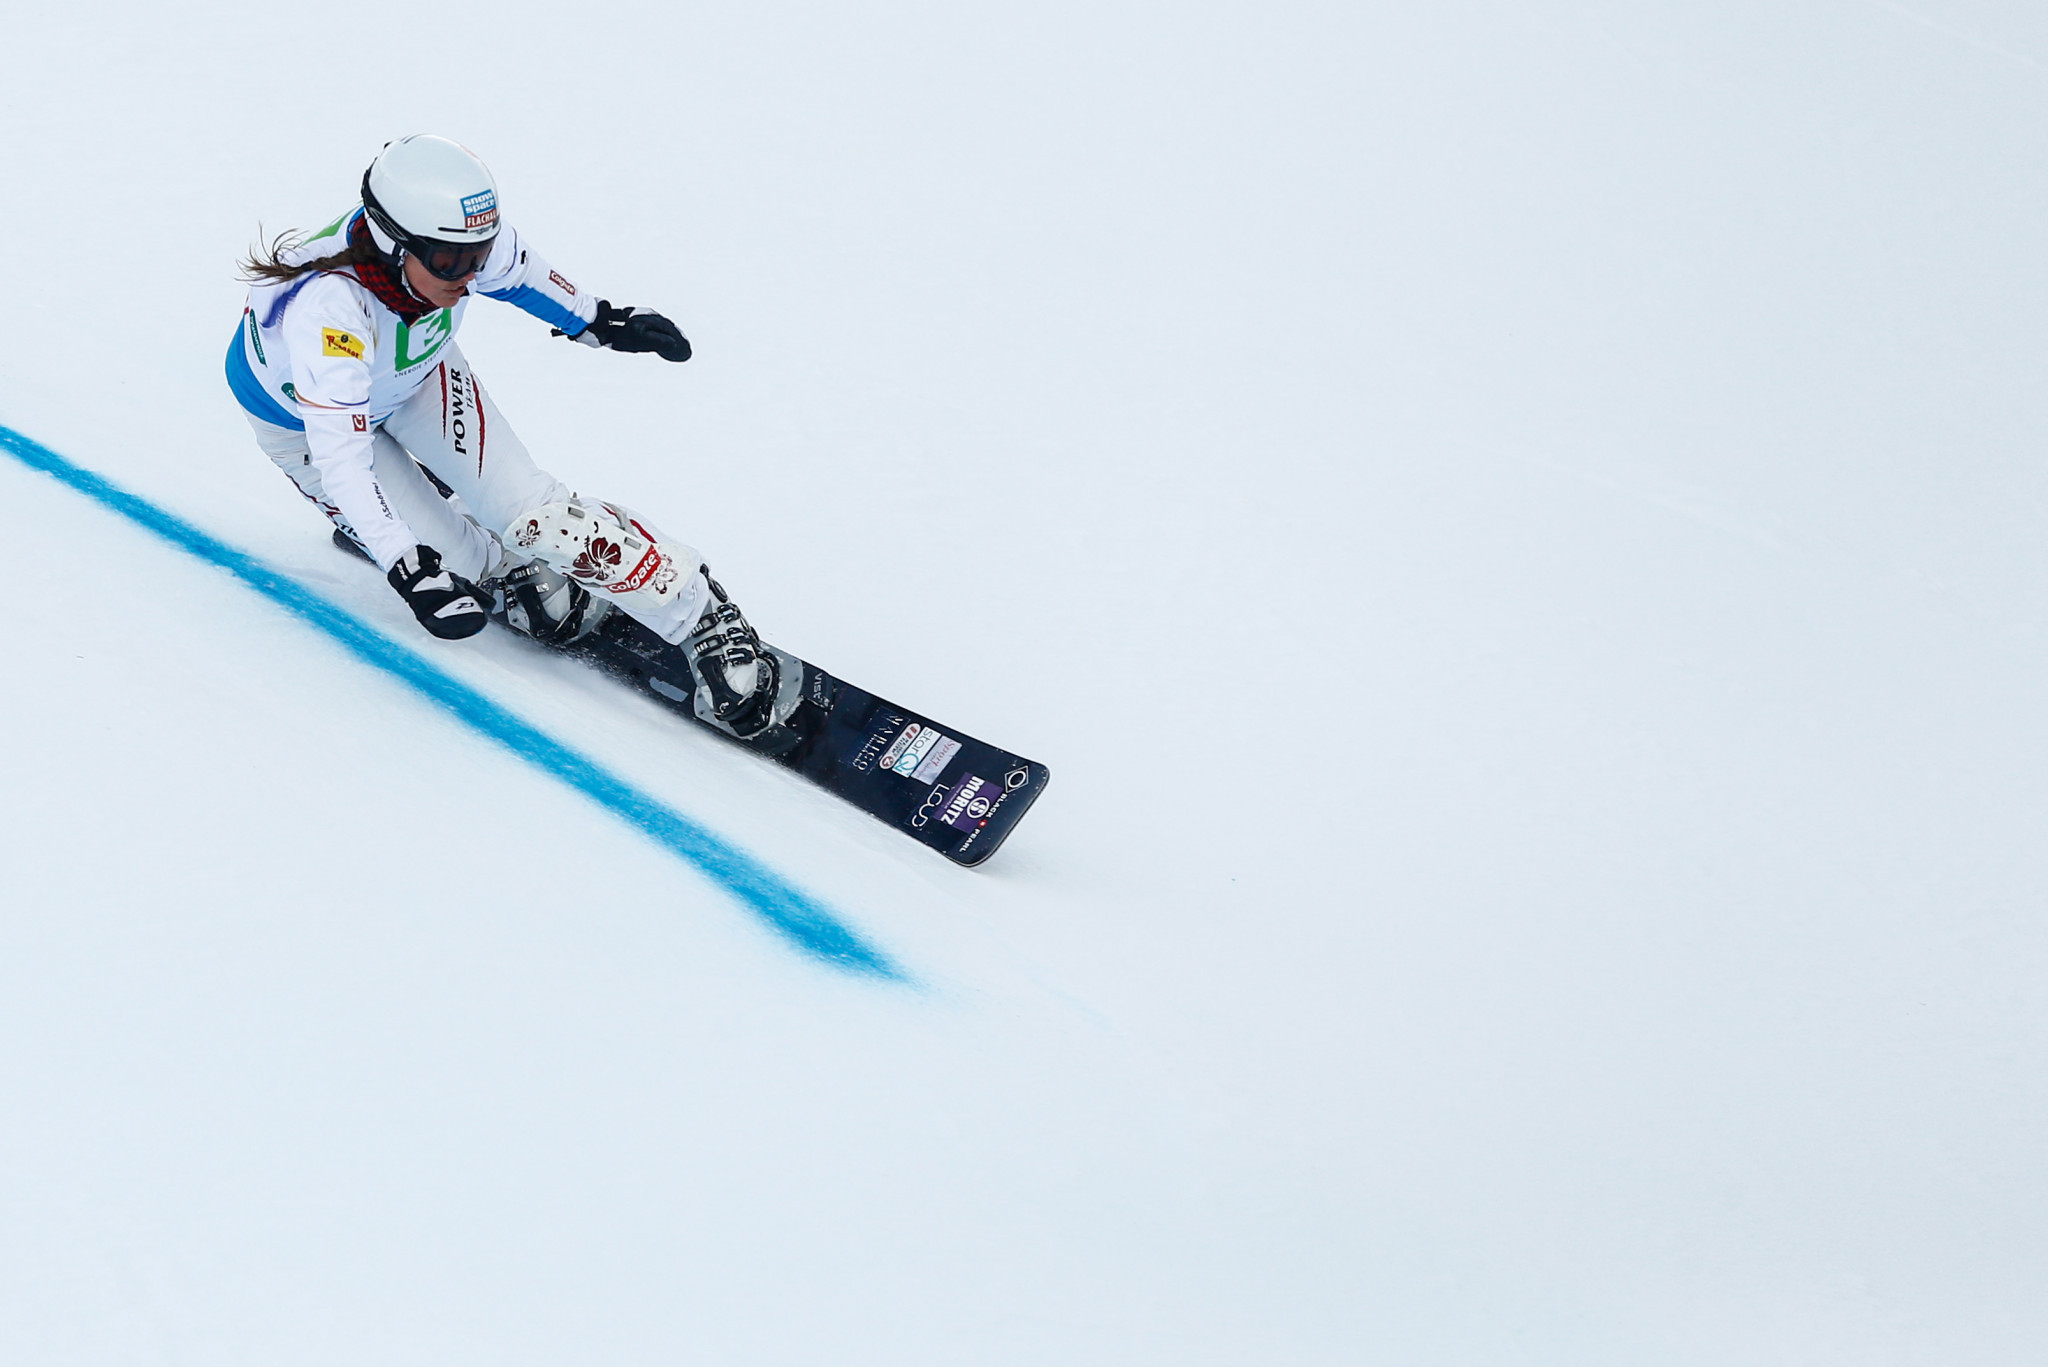 Austria's Claudia Riegler, who this month became the oldest winner of an FIS Snowboard World Cup event at 45-years-old, will compete in Moscow ©Getty Images